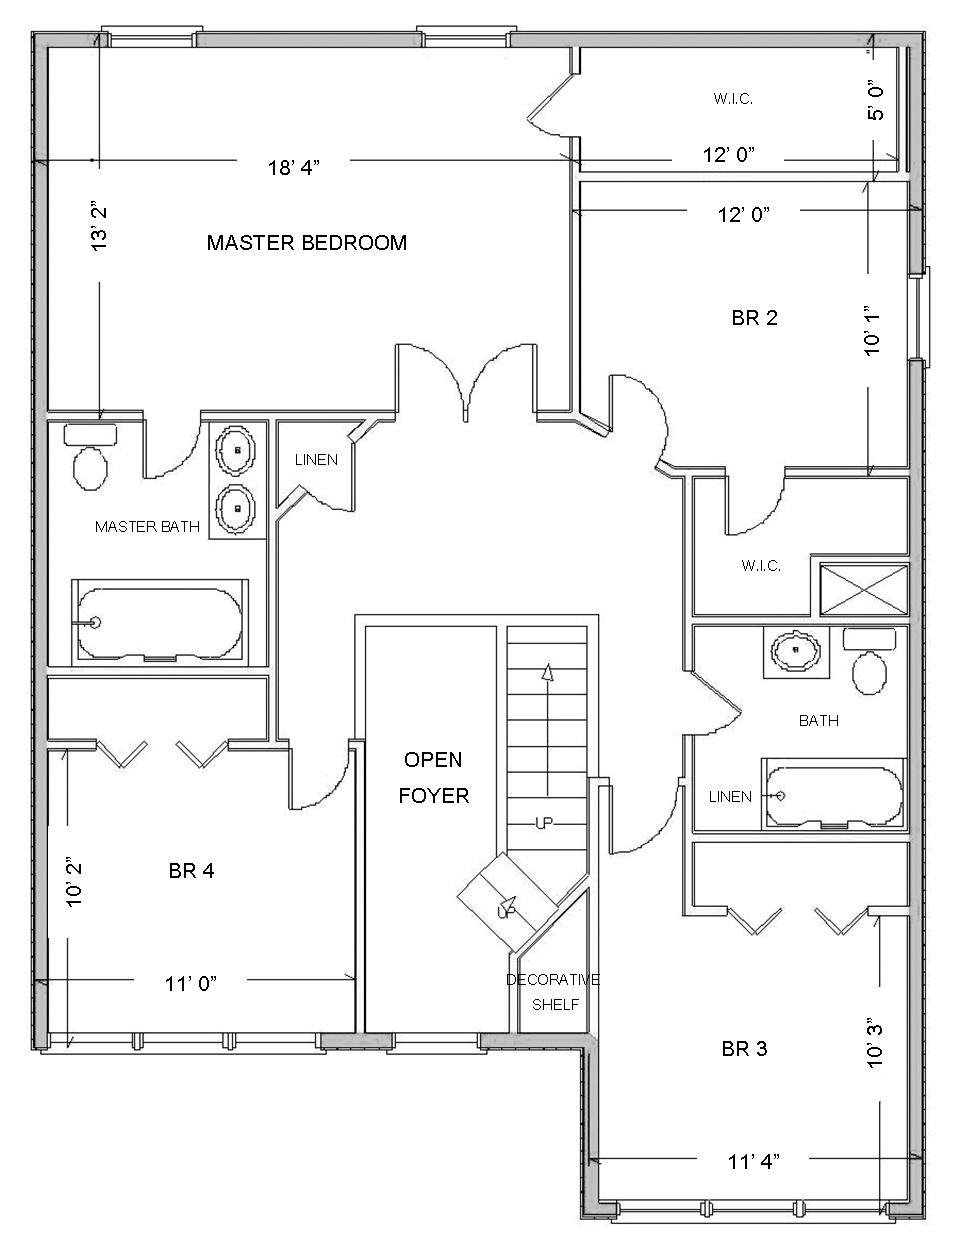 Digital smart draw floor plan with smartdraw software for Print architectural plans